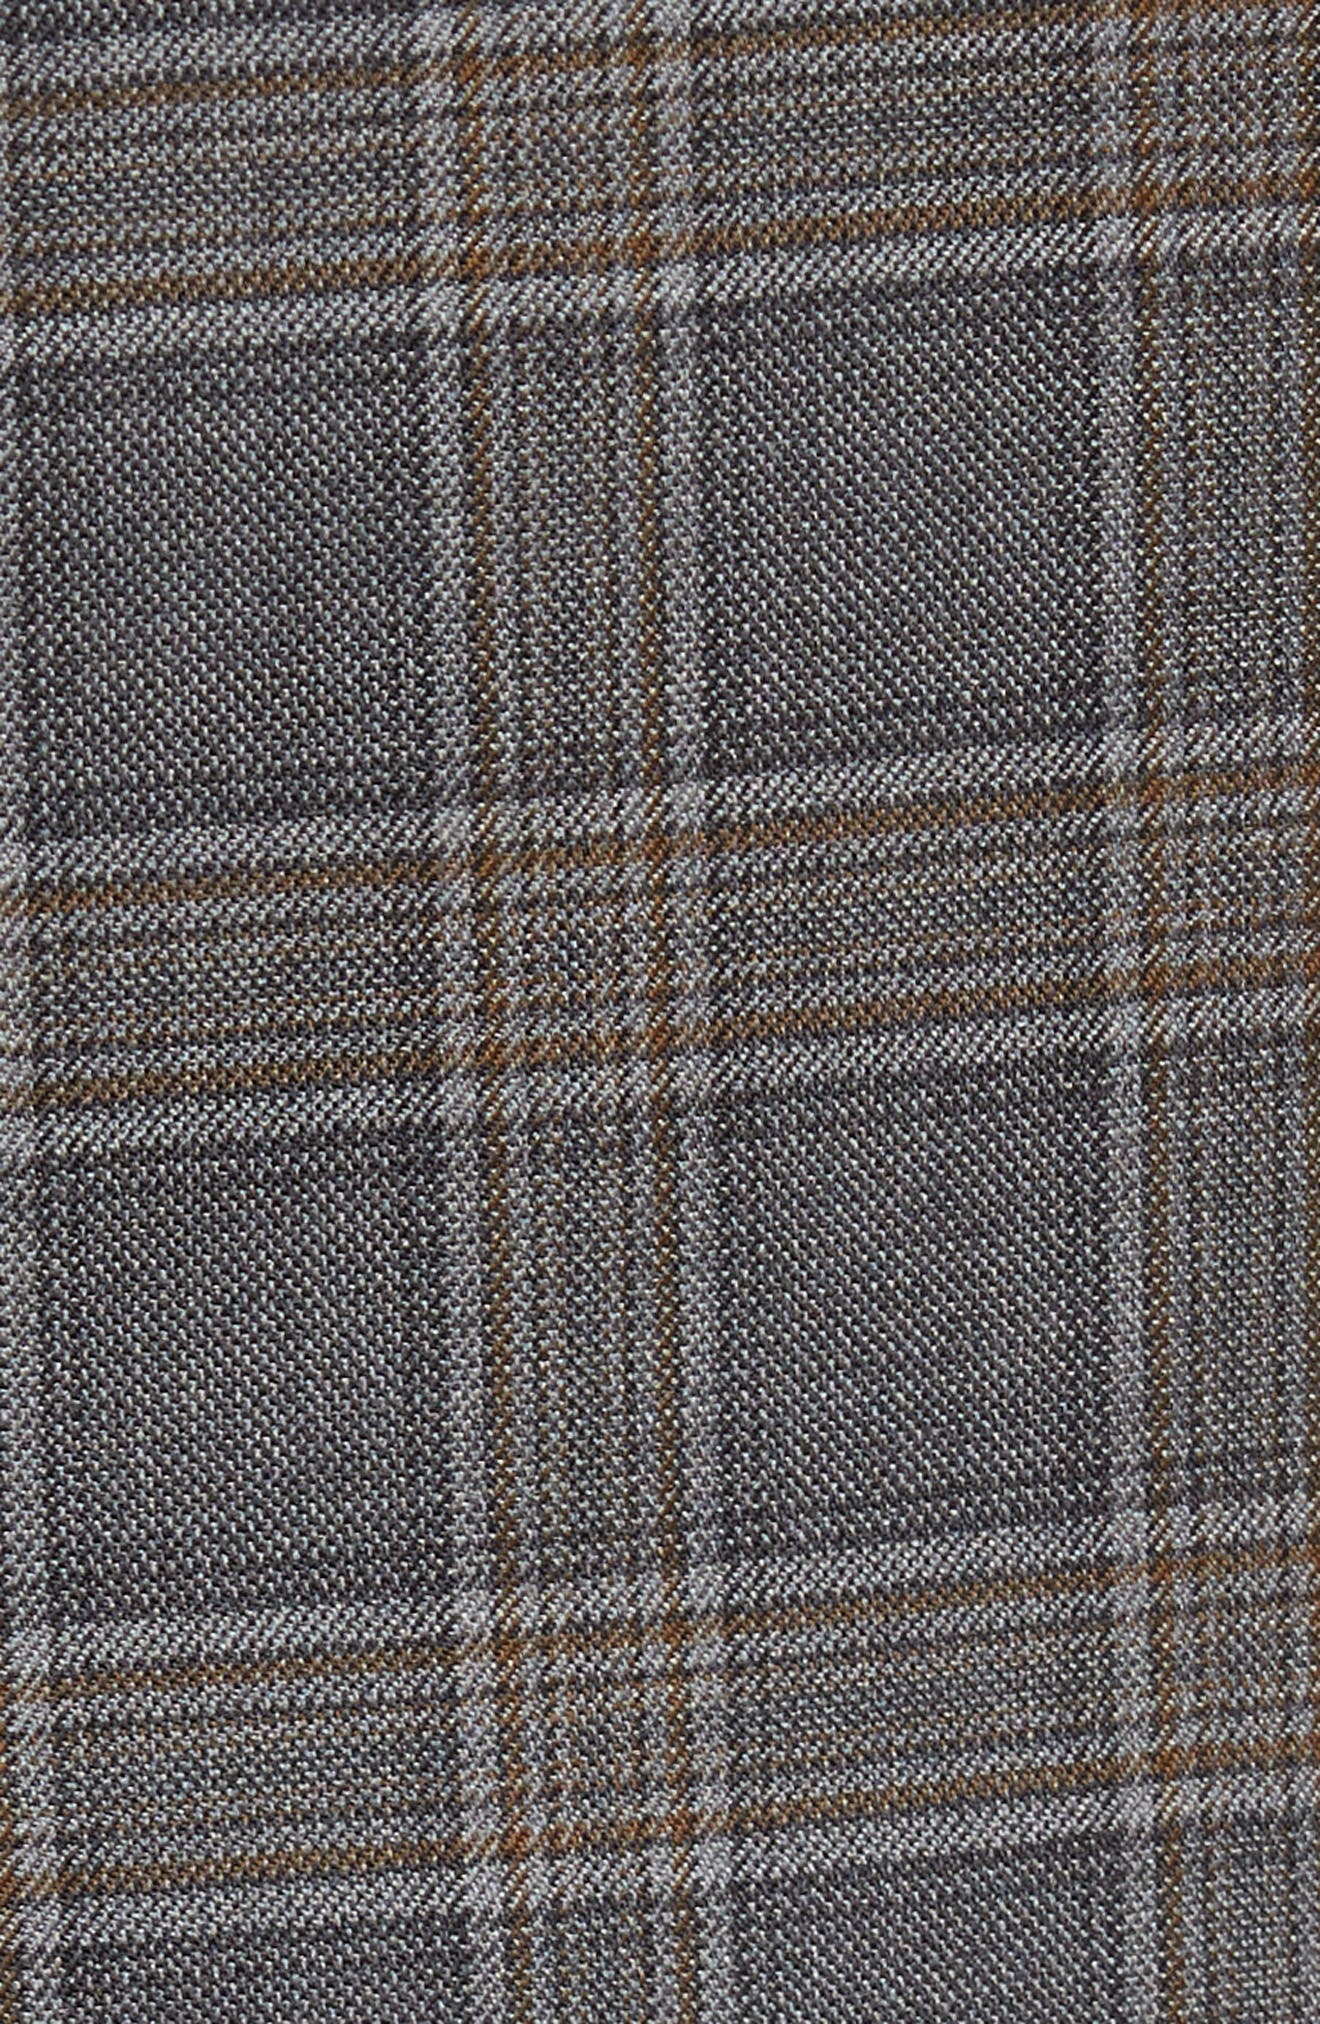 Classic Fit Plaid Wool Sport Coat,                             Alternate thumbnail 6, color,                             020